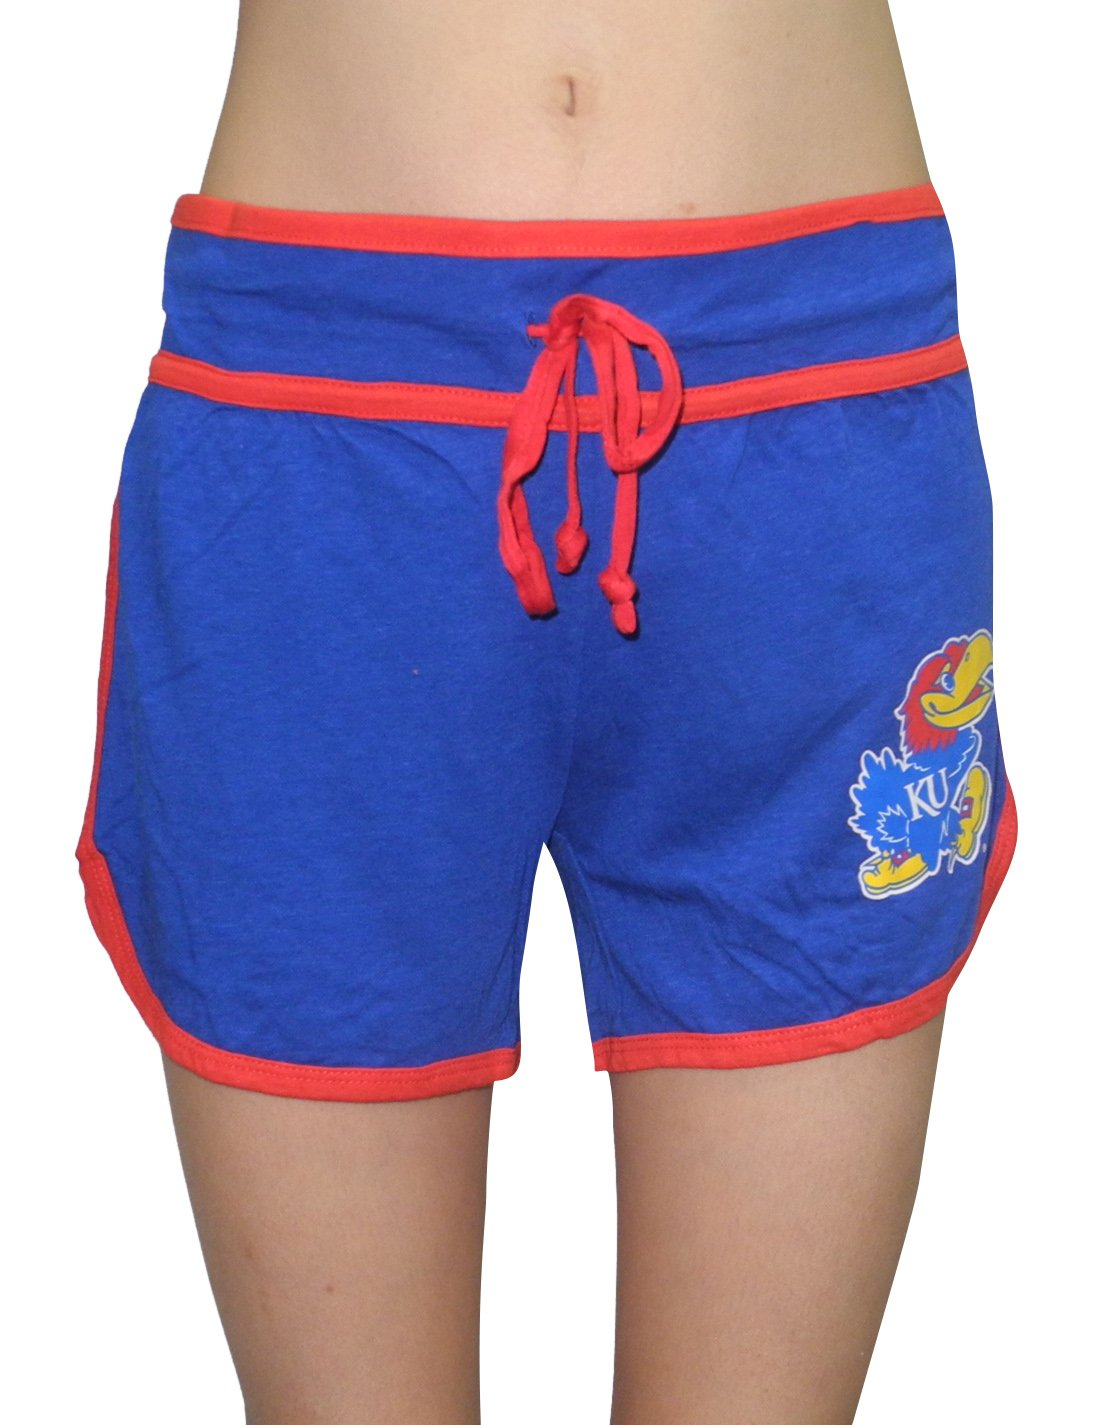 Womens KANSAS JAYHAWKS Running / Athletic Shorts womens kansas jayhawks running athletic shorts